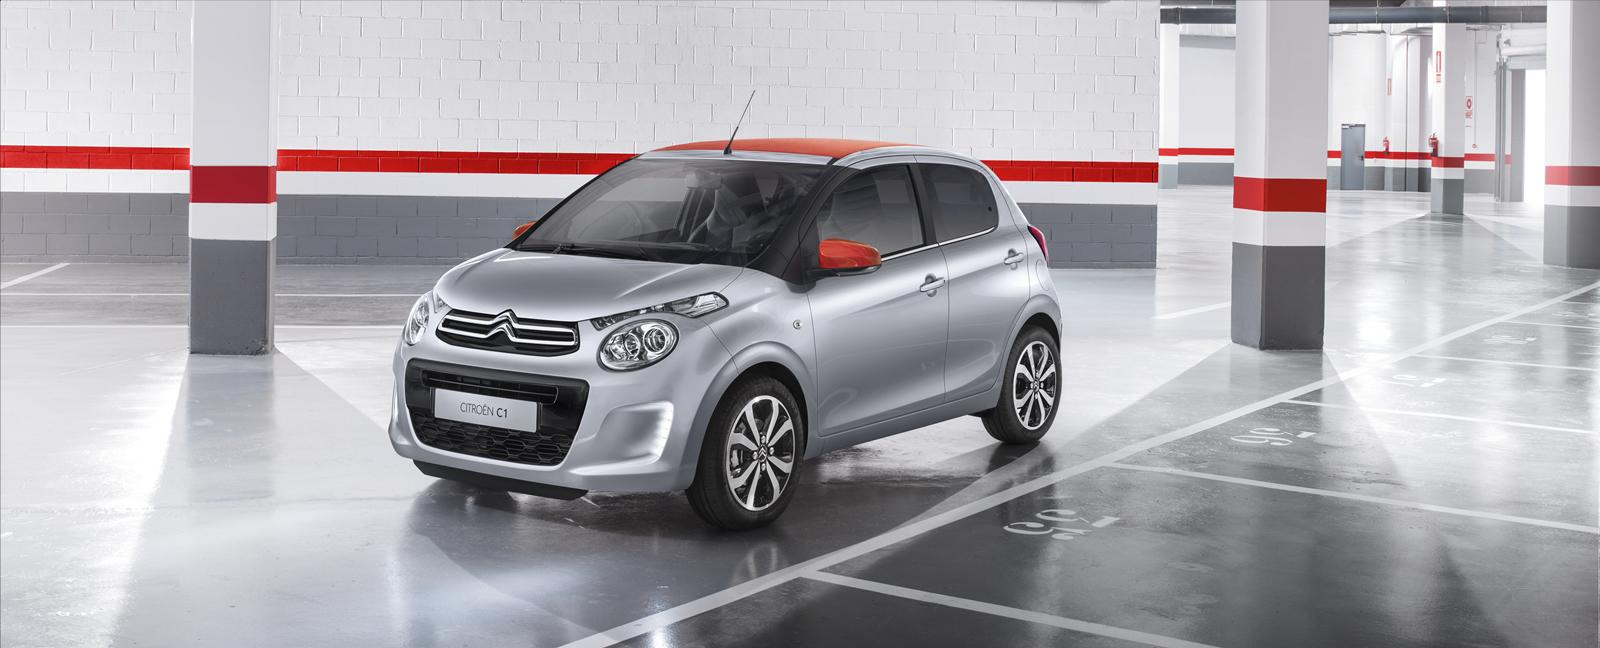 citroen reveals new c1 city car introduces airscape open top model autoevolution. Black Bedroom Furniture Sets. Home Design Ideas